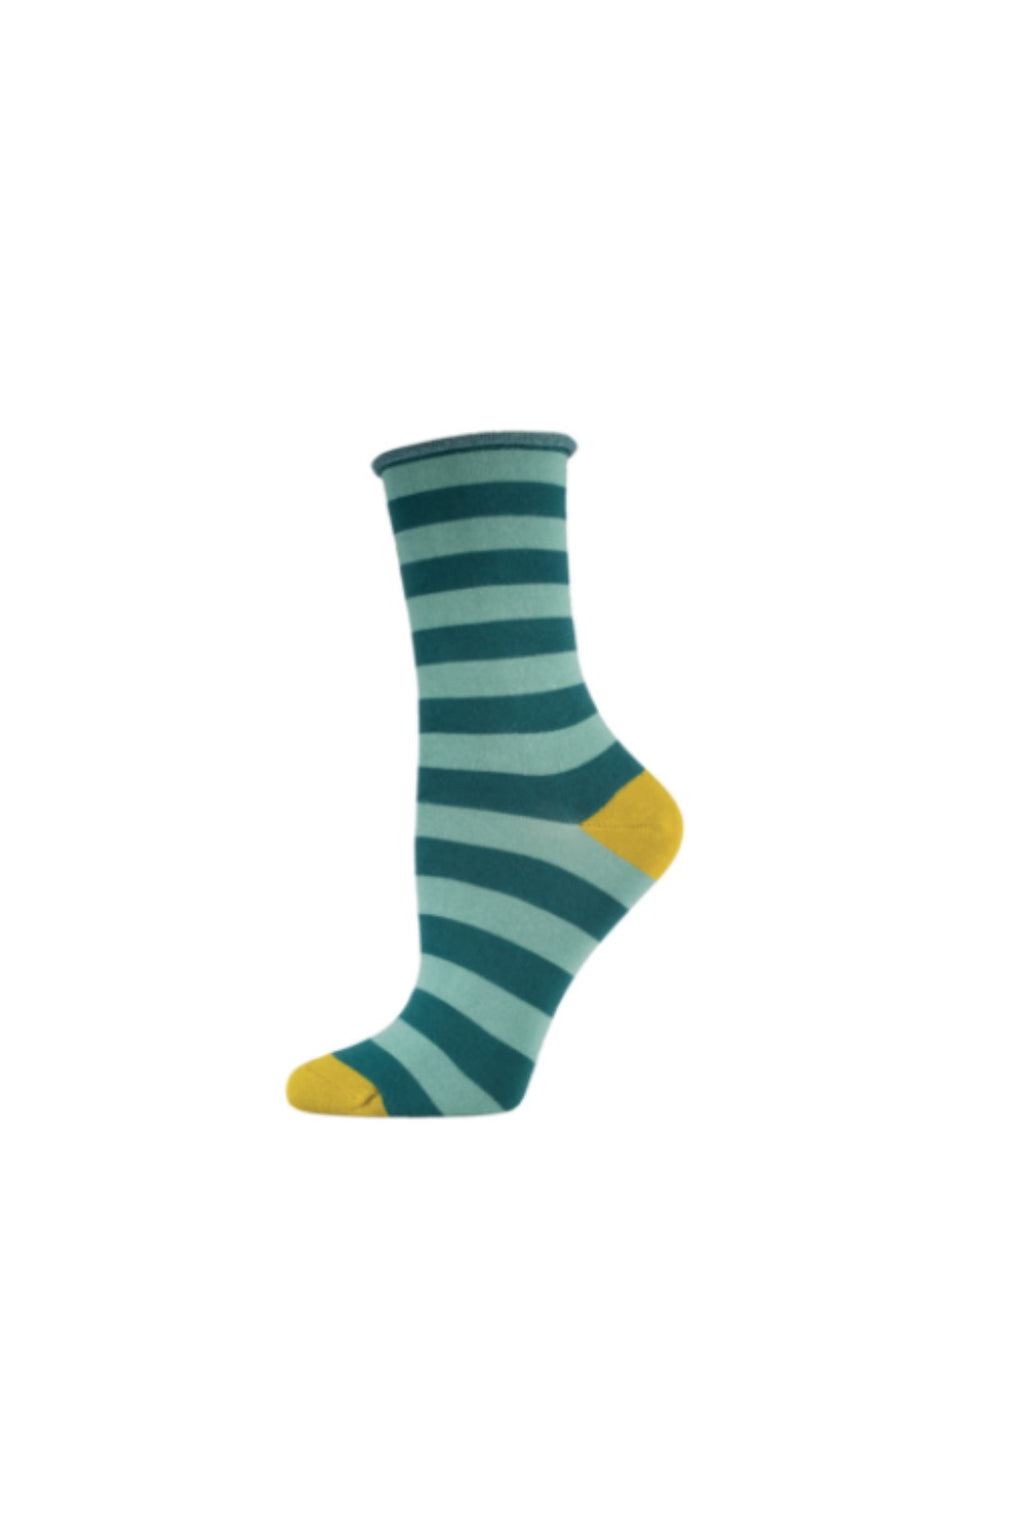 Socksmith  Bamboo Stripe Socks - Deep Teal